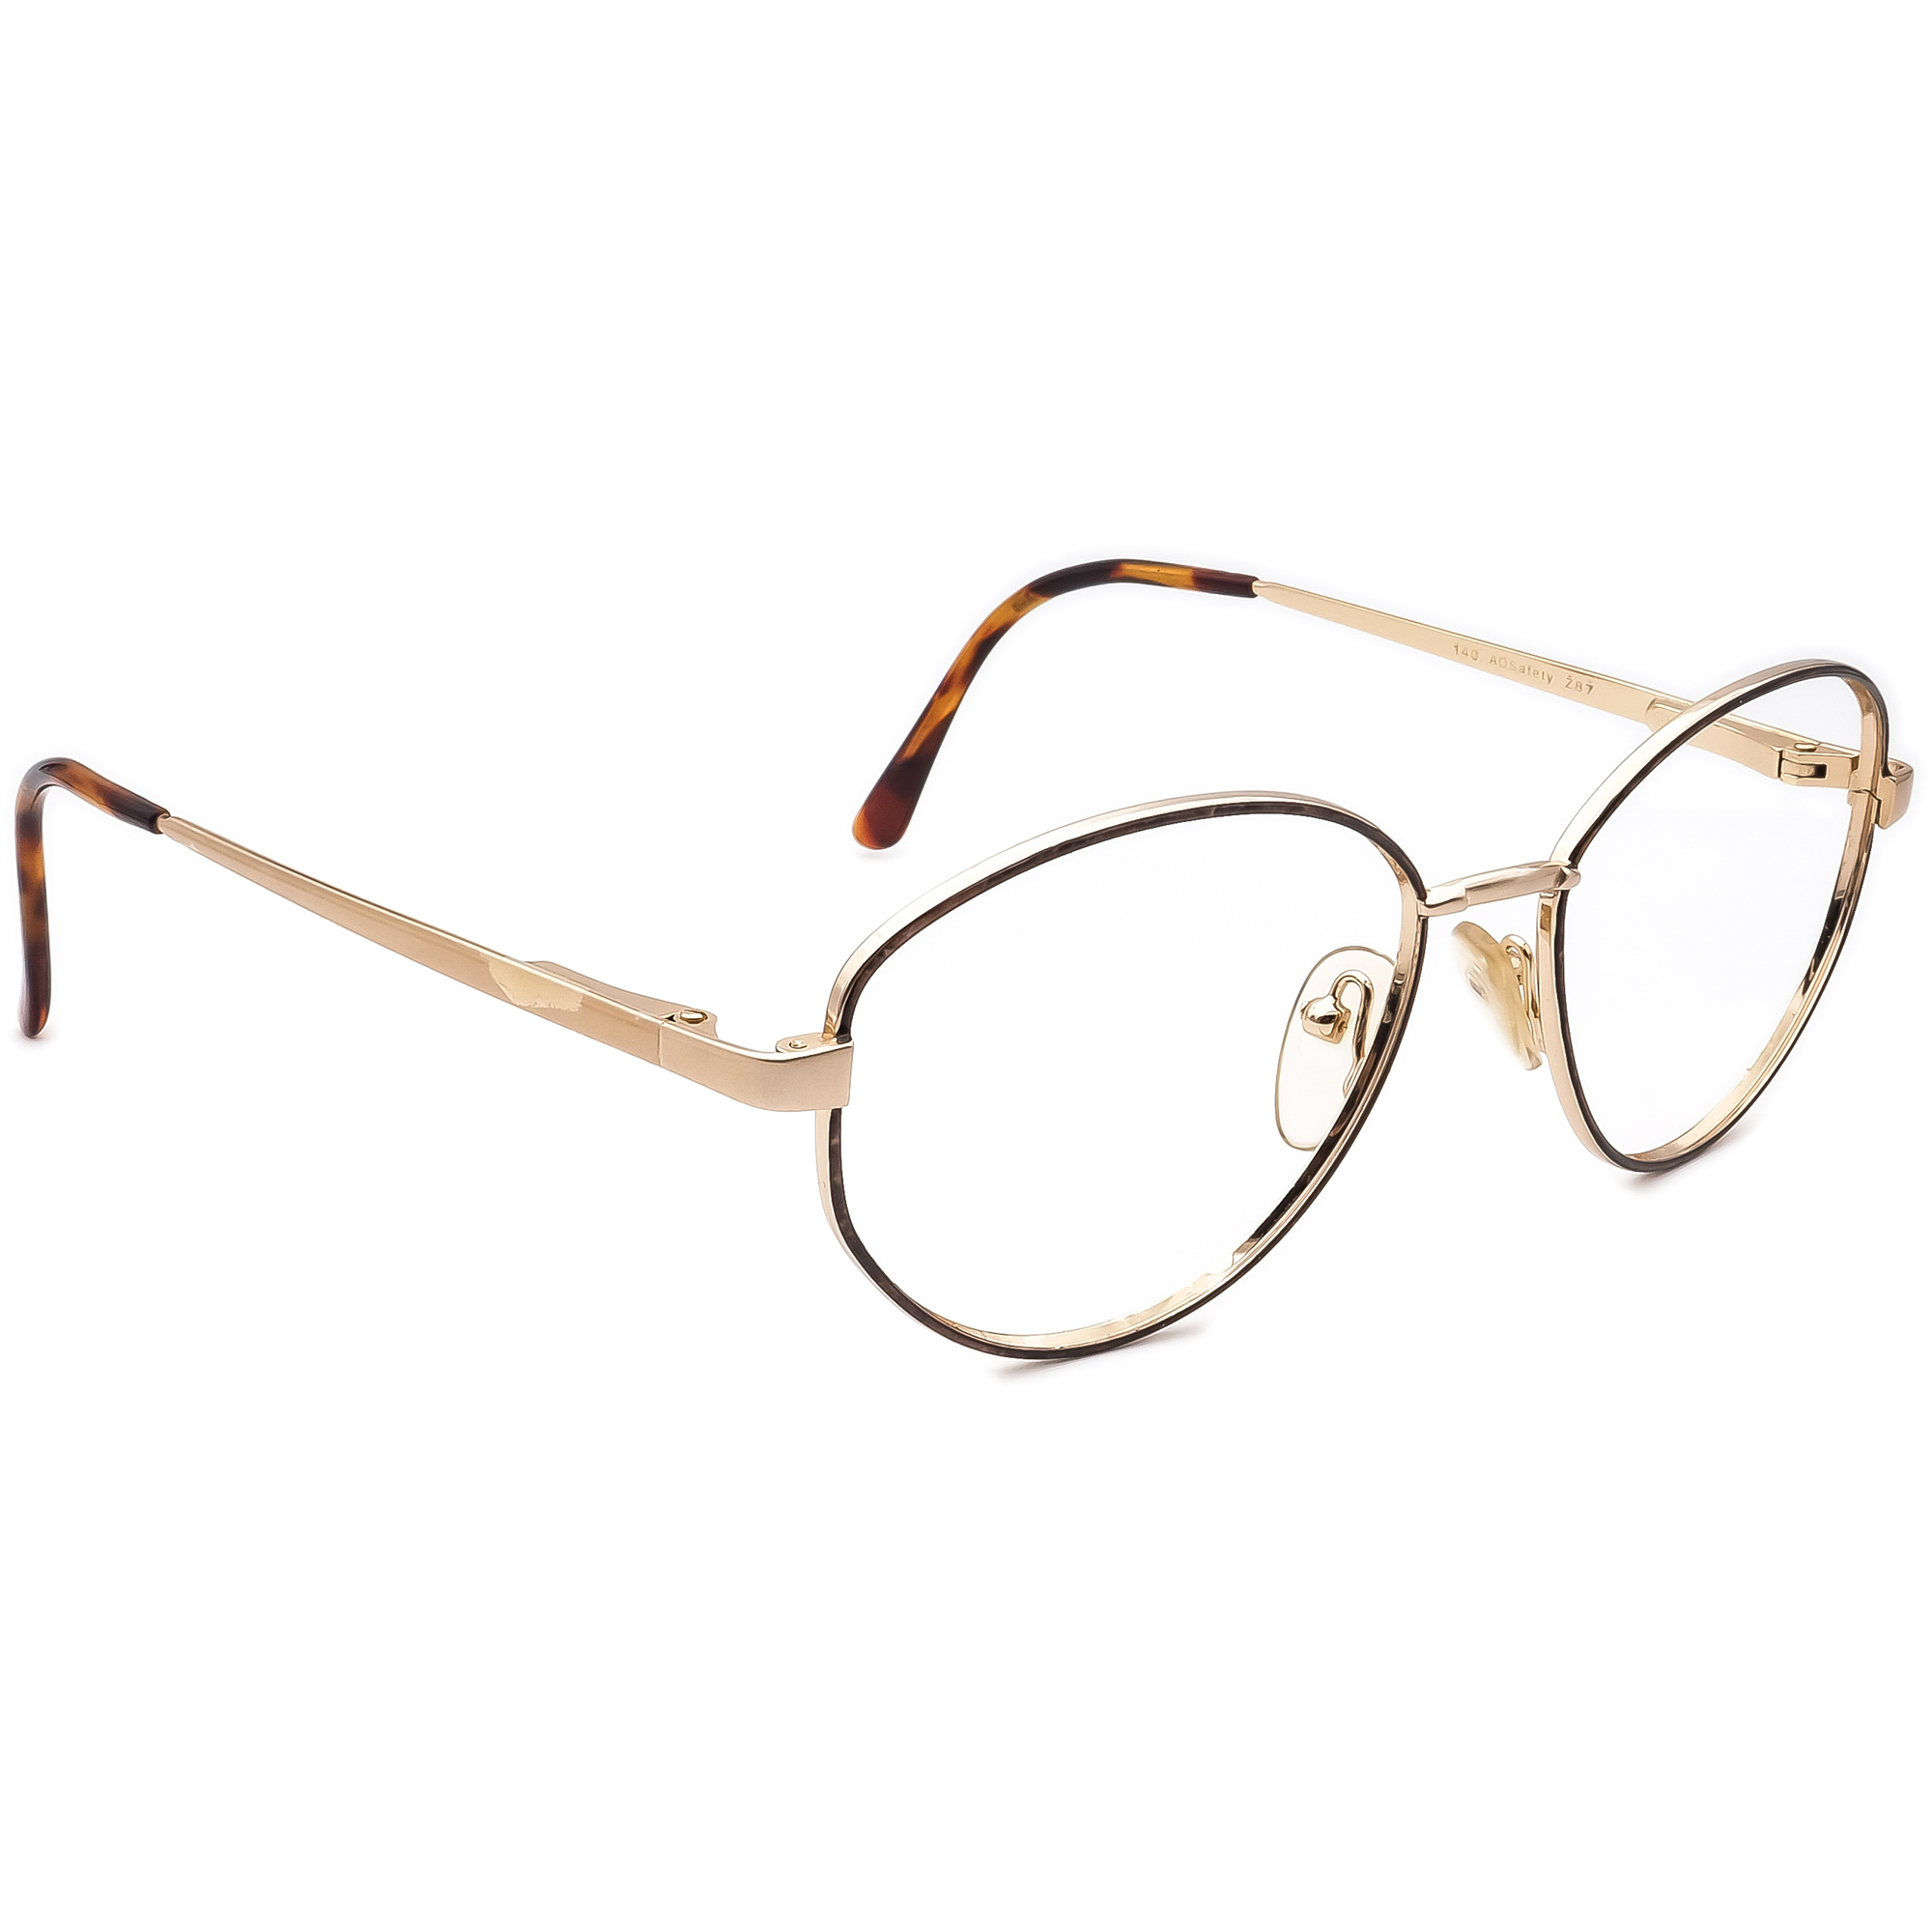 American Optical AOSafety Z87 YP 20 Eyegasses Frame Only